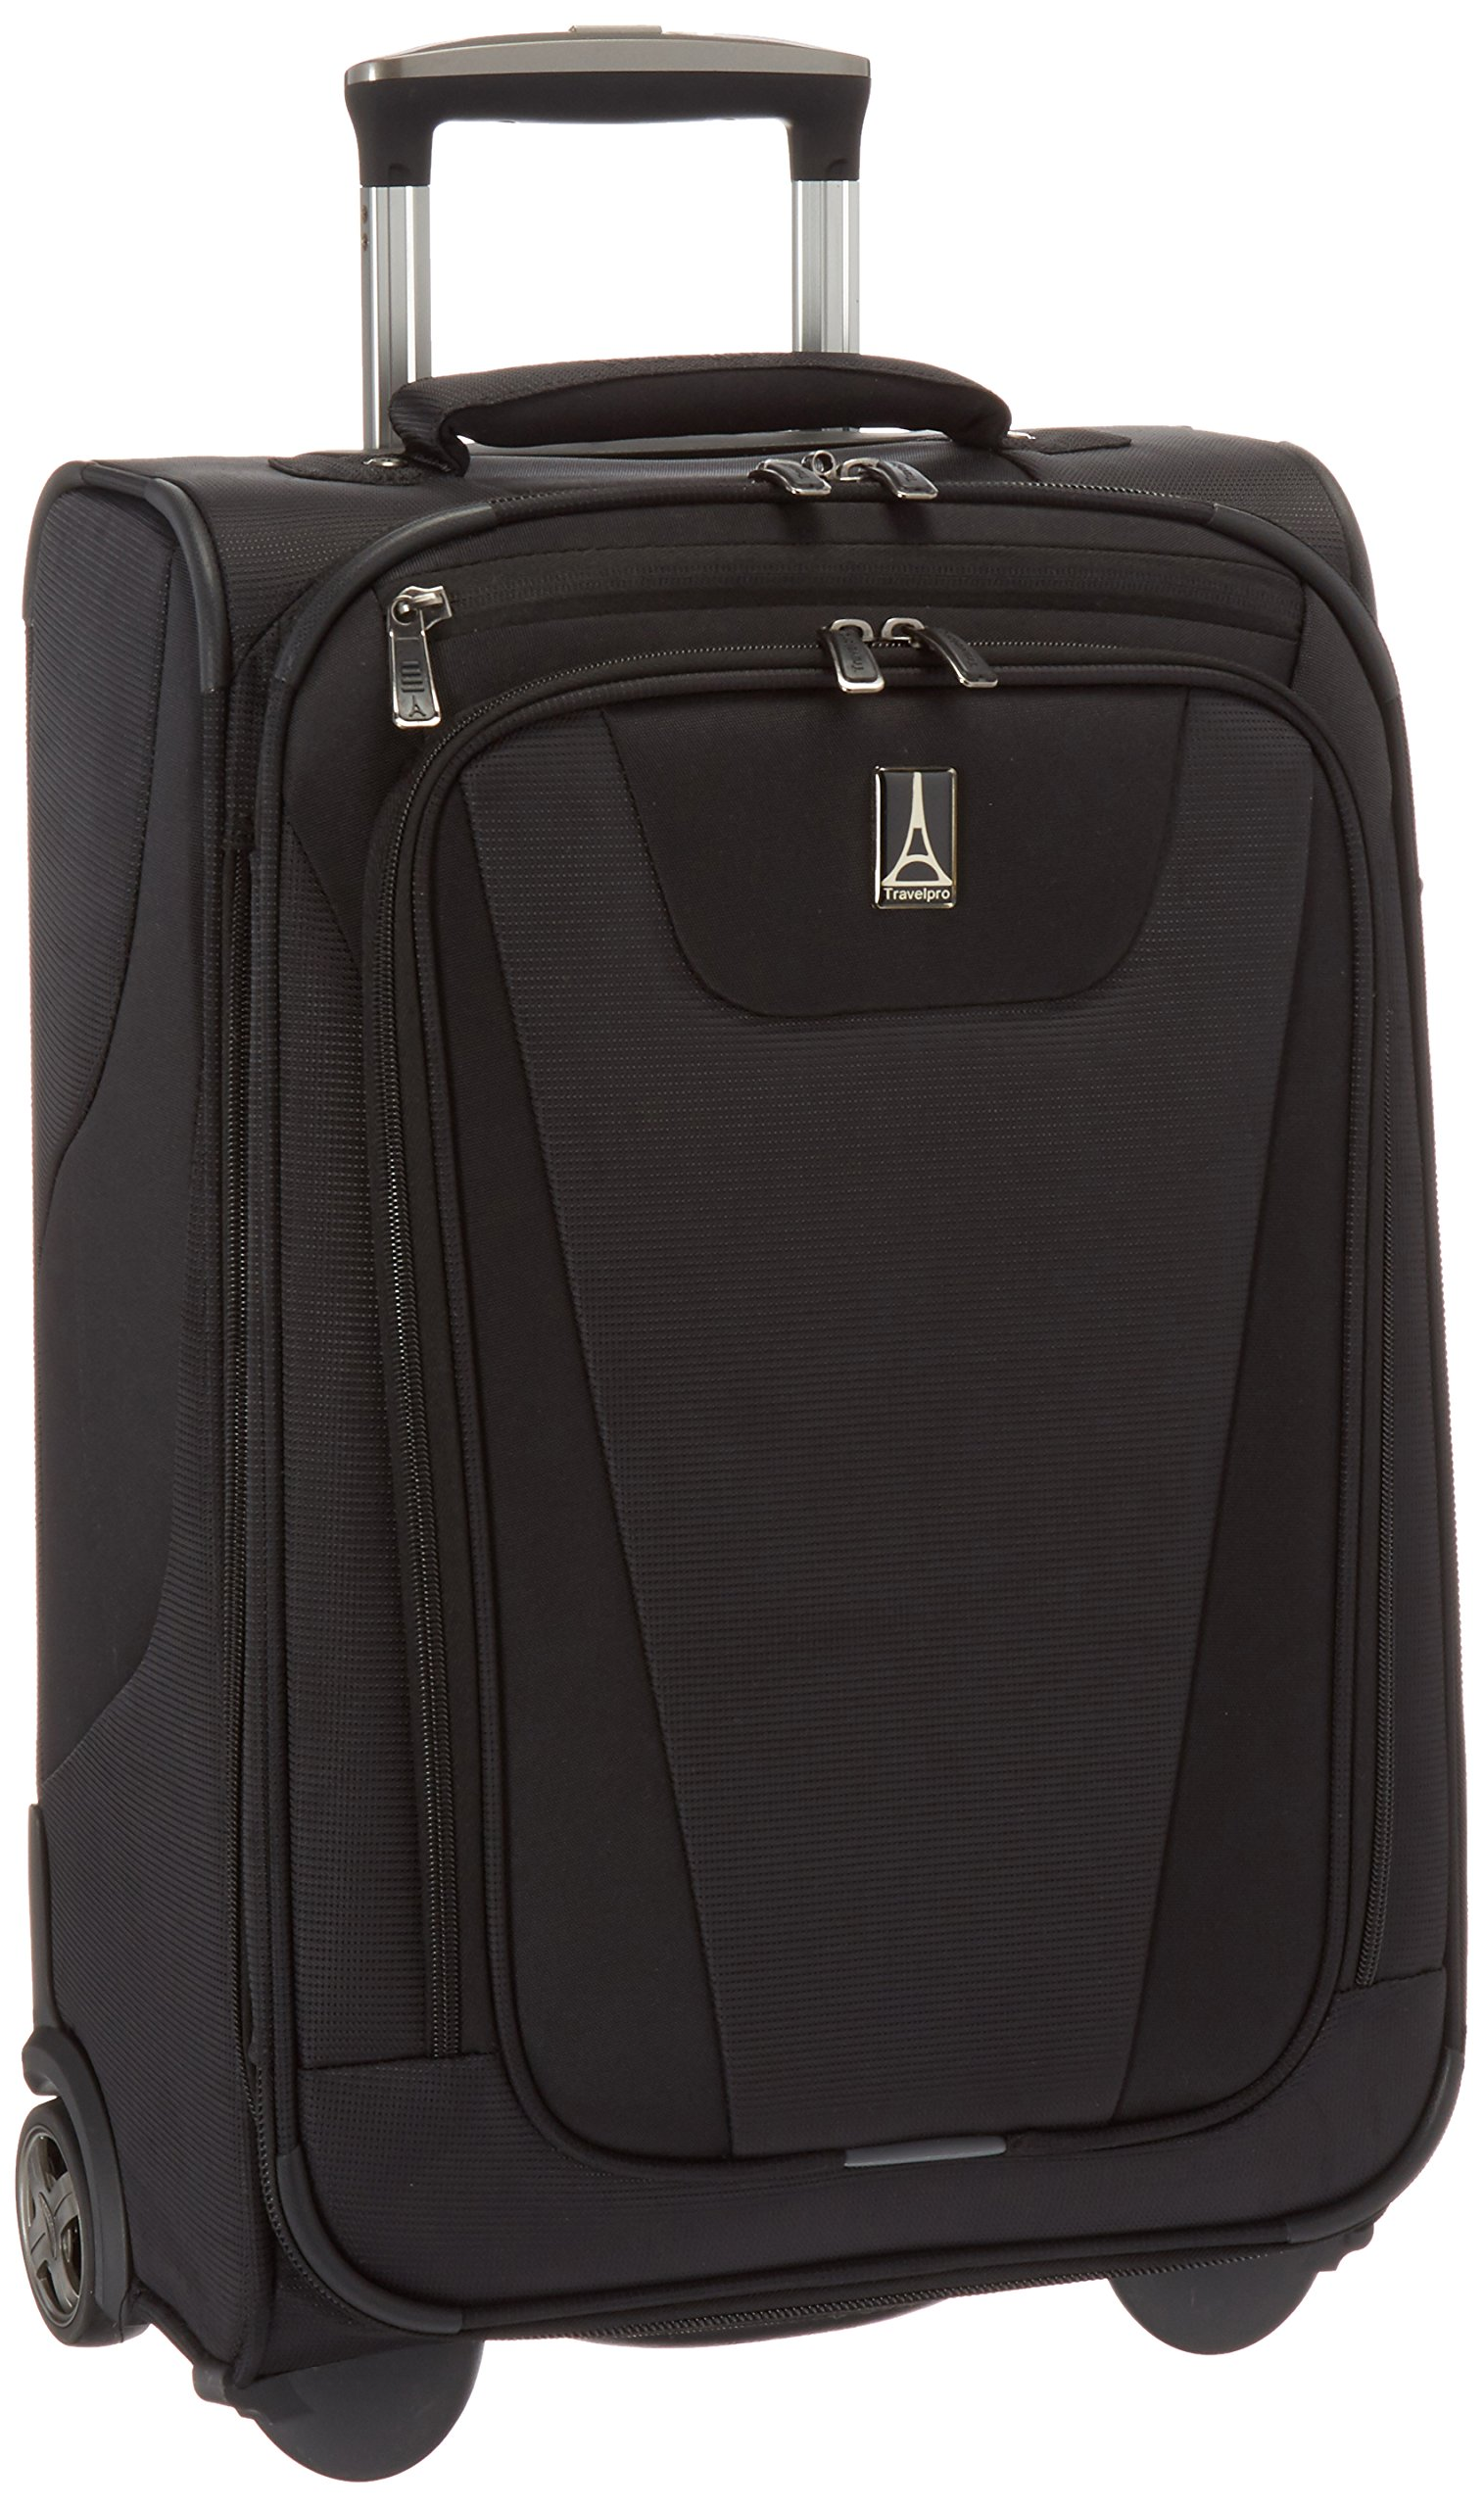 Travelpro Maxlite 4 22'' Expandable Rollaboard Suitcase, Black